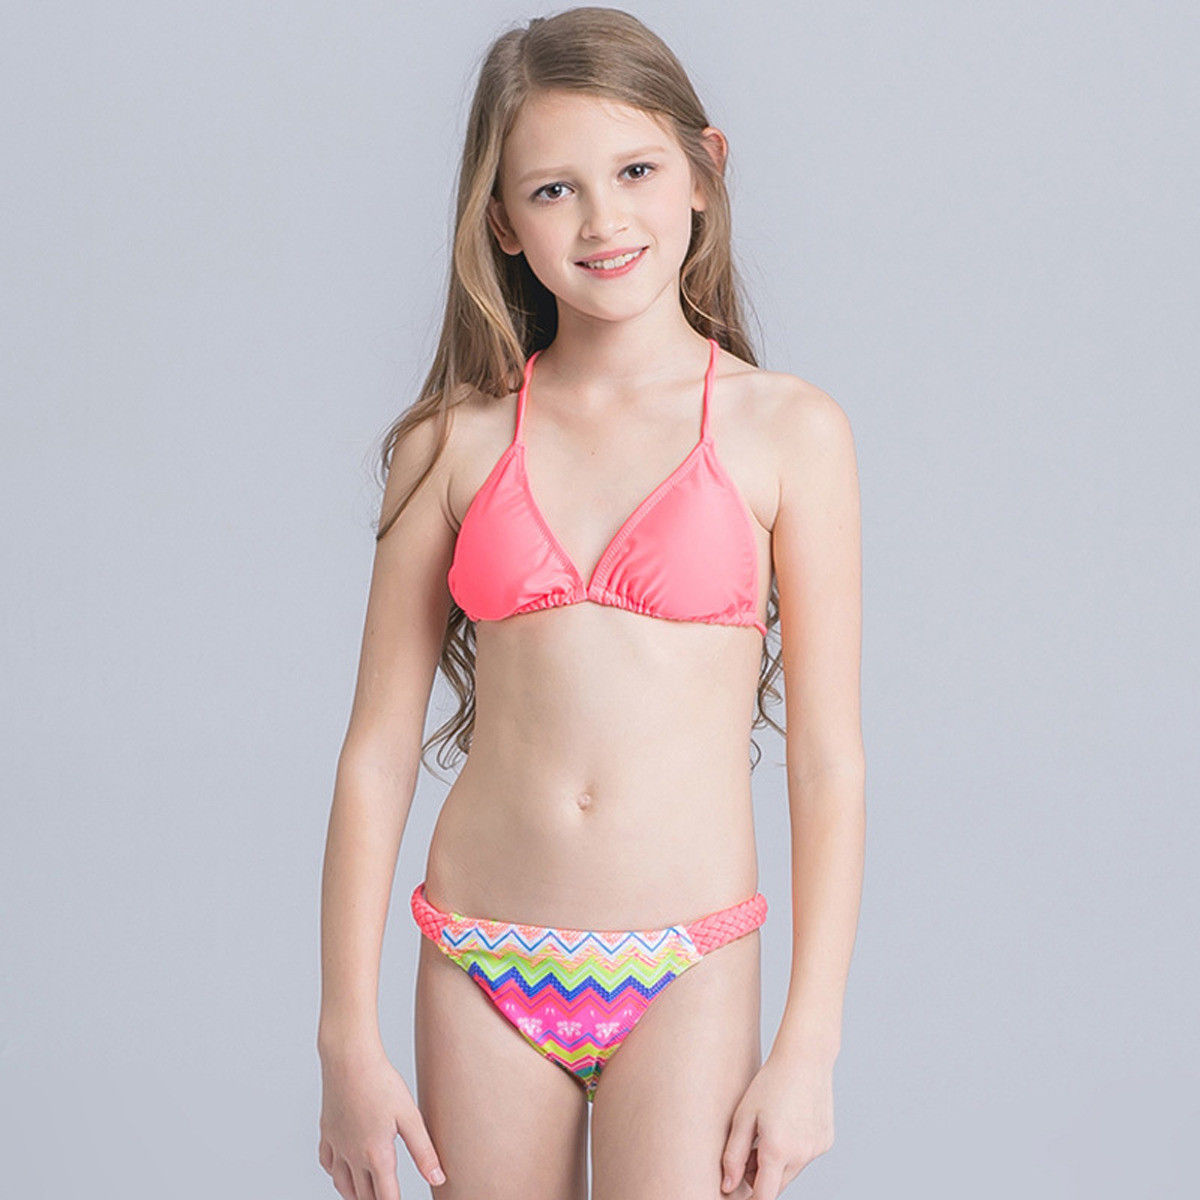 Swimwear / Kids Swimwear. Make a splash in our cute swimsuits for kids! We provide a wide range of colorful patterns and playful styles of children swimsuits. Enjoy your beach time with your kids dressing in mother-daughter bathing suits. No matter you are in a chic bikini or a cutting edge one-piece, we have the matching kids kids bathing suits.